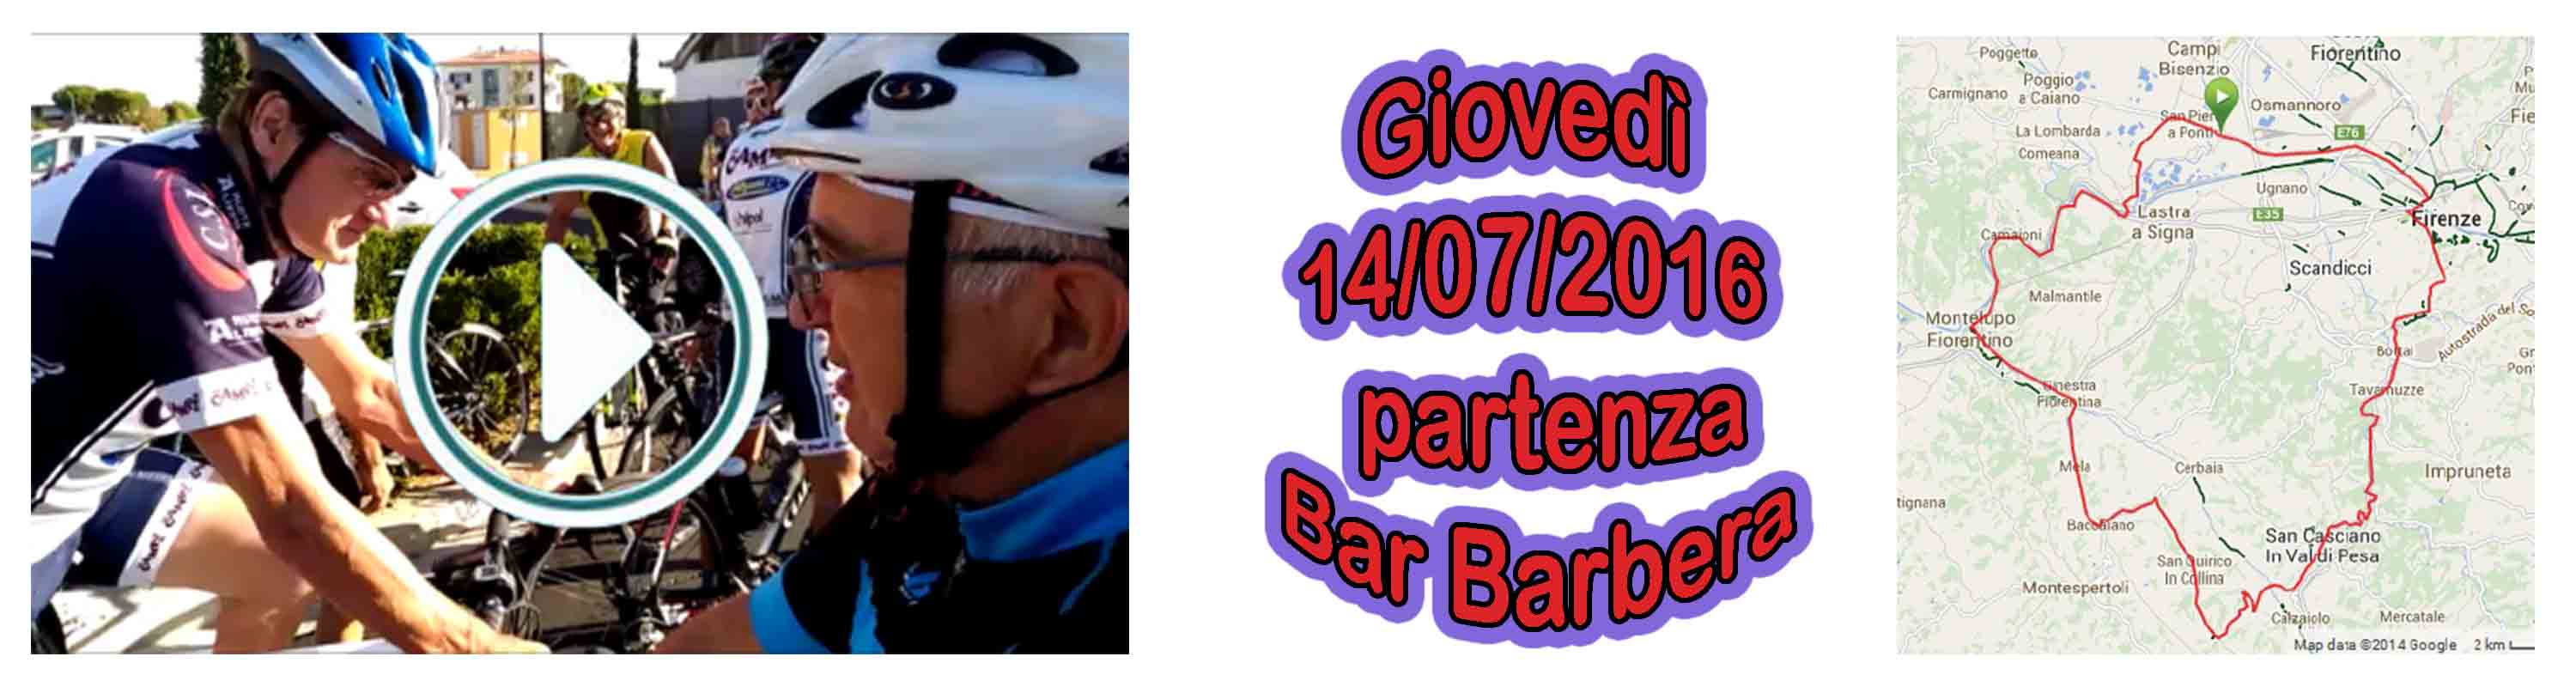 Banner Partenza dal Bar Barbera con video